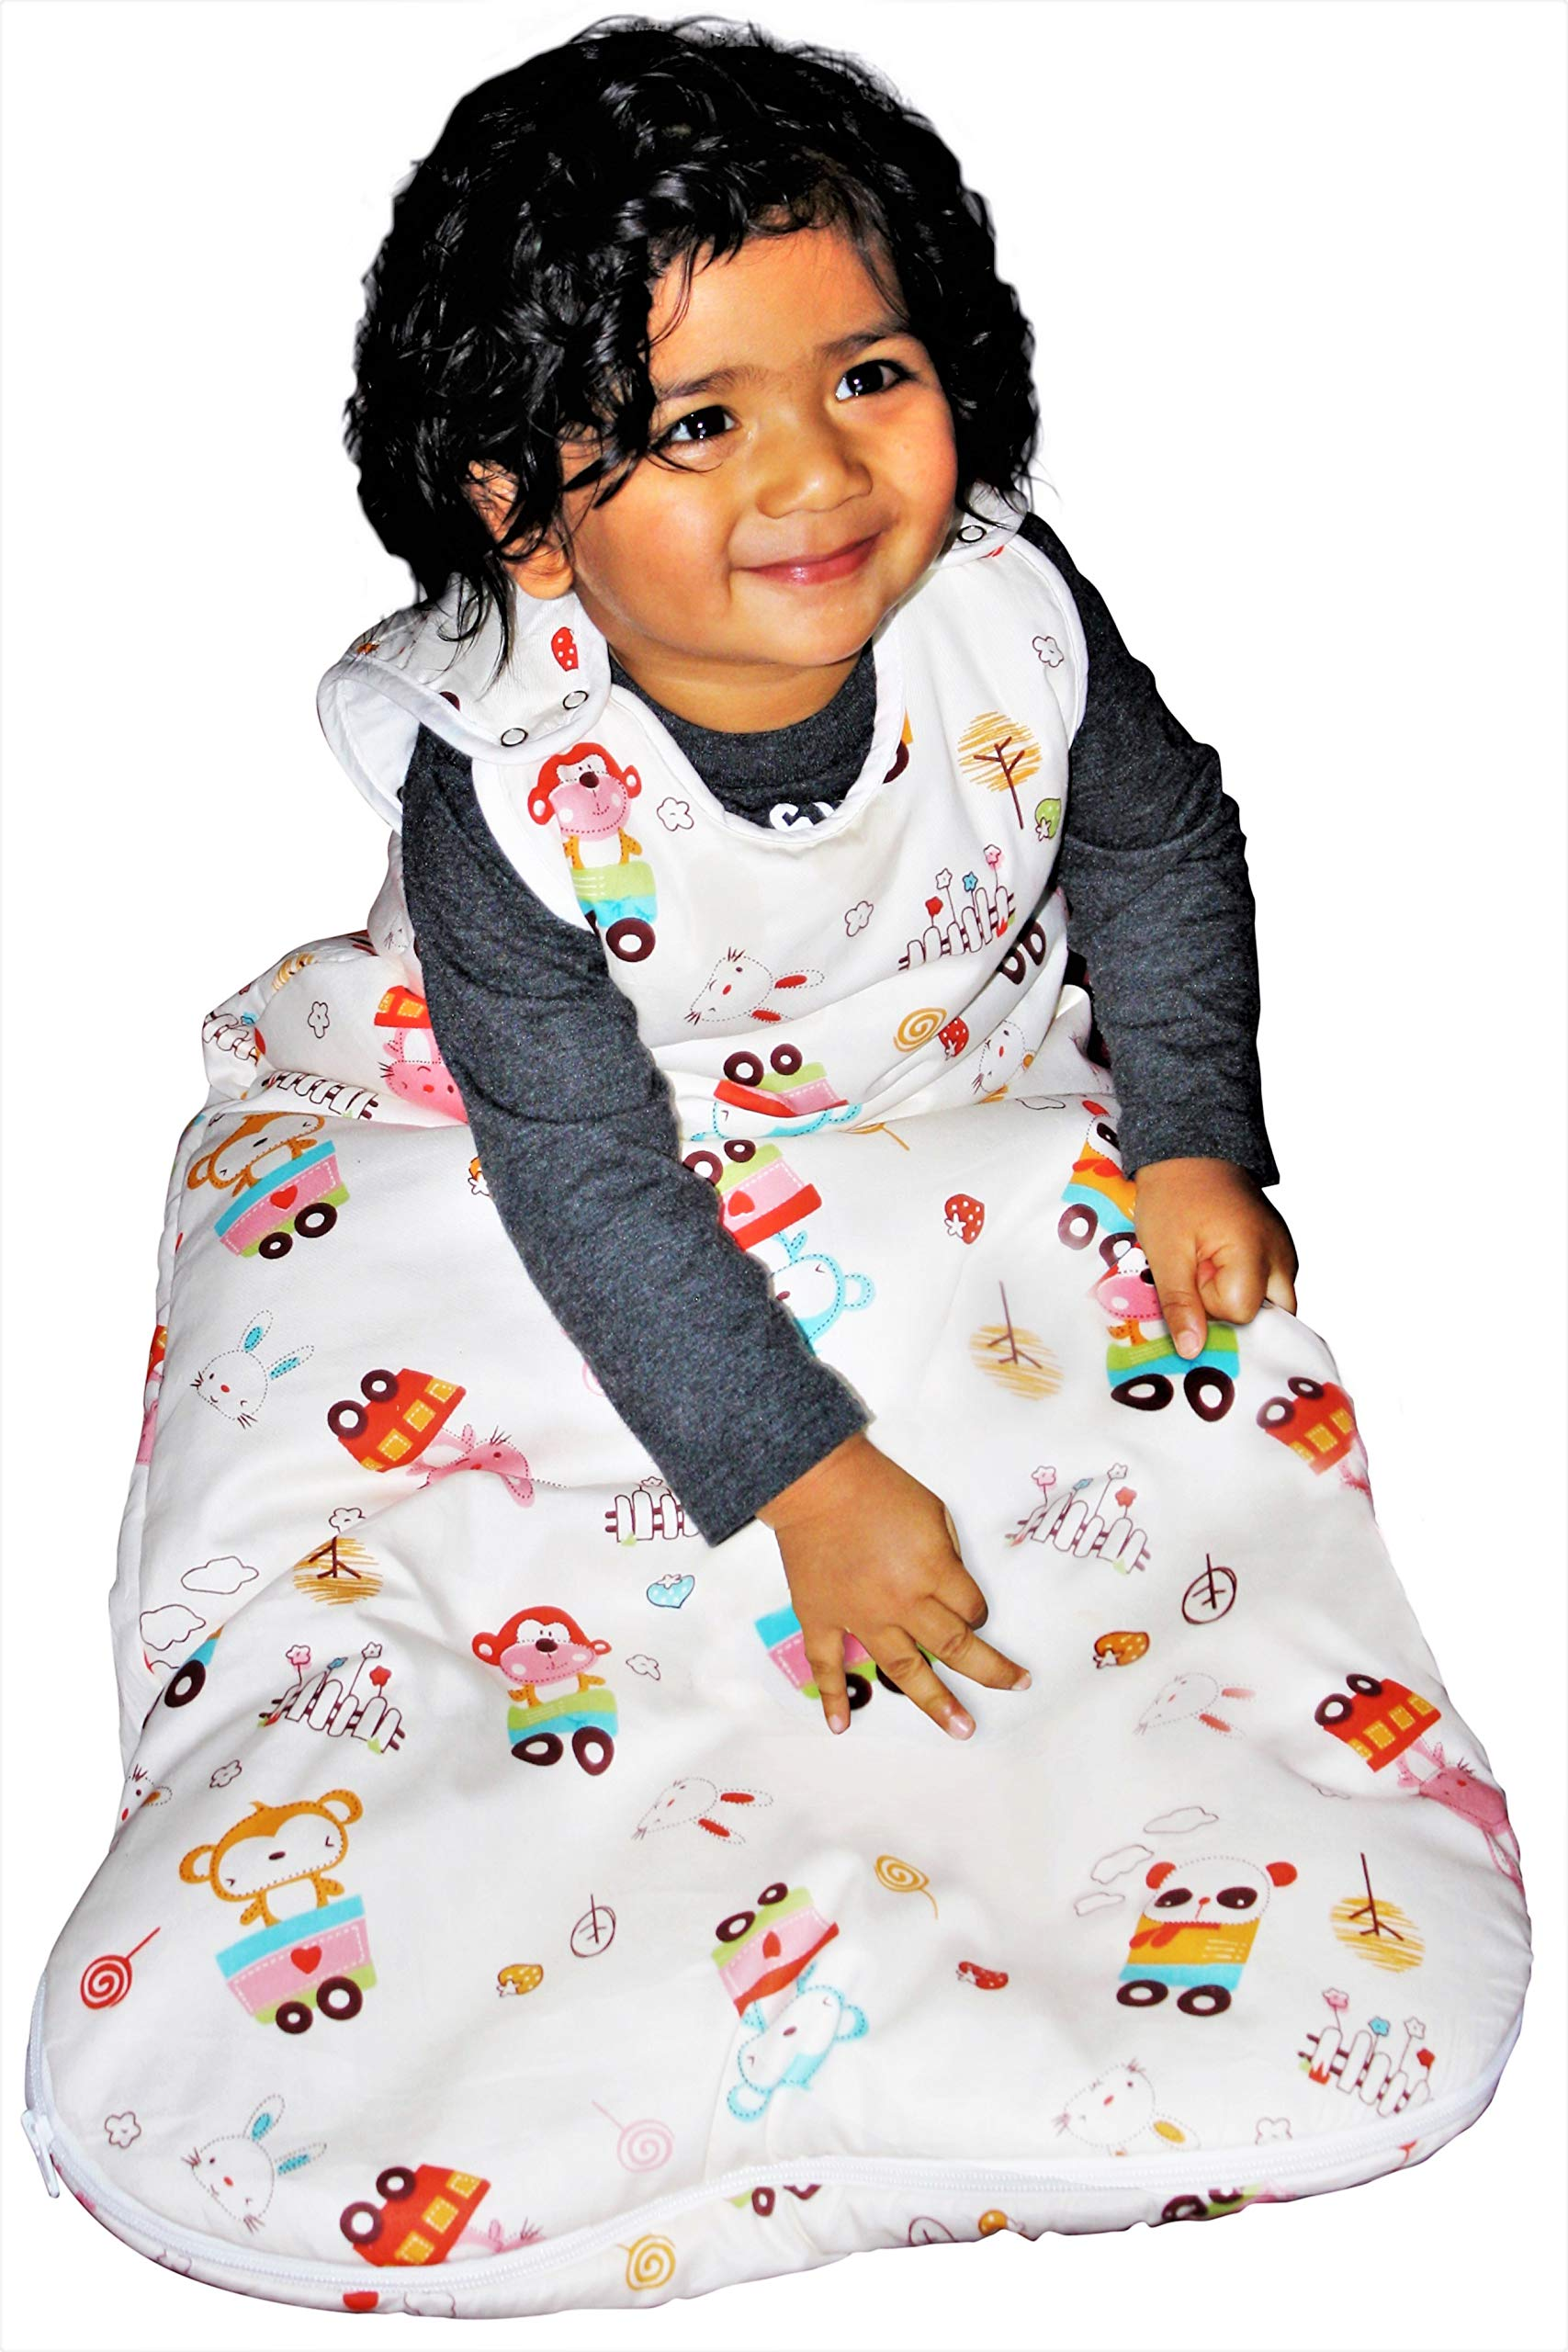 Les Tulipes du Nord Baby Sleeping Bag Unisex, 2.5 Tog Winter Sleep Sack | Warm | 100% Cotton Lining Exterior & Interior | 100% Polyester Filling (6-18 Months) by Les Tulipes du Nord